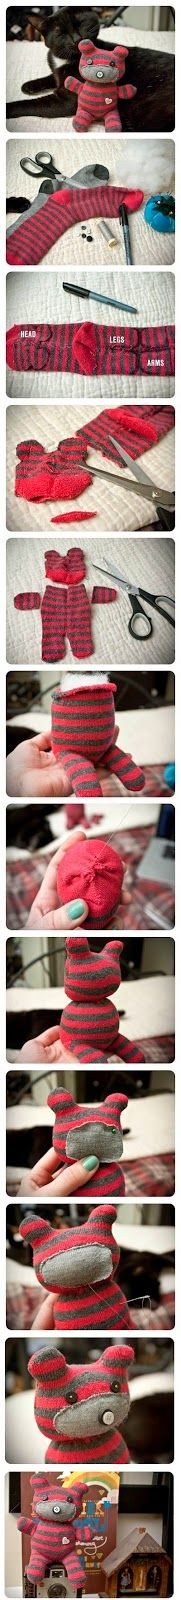 how to make a bear with an old sock